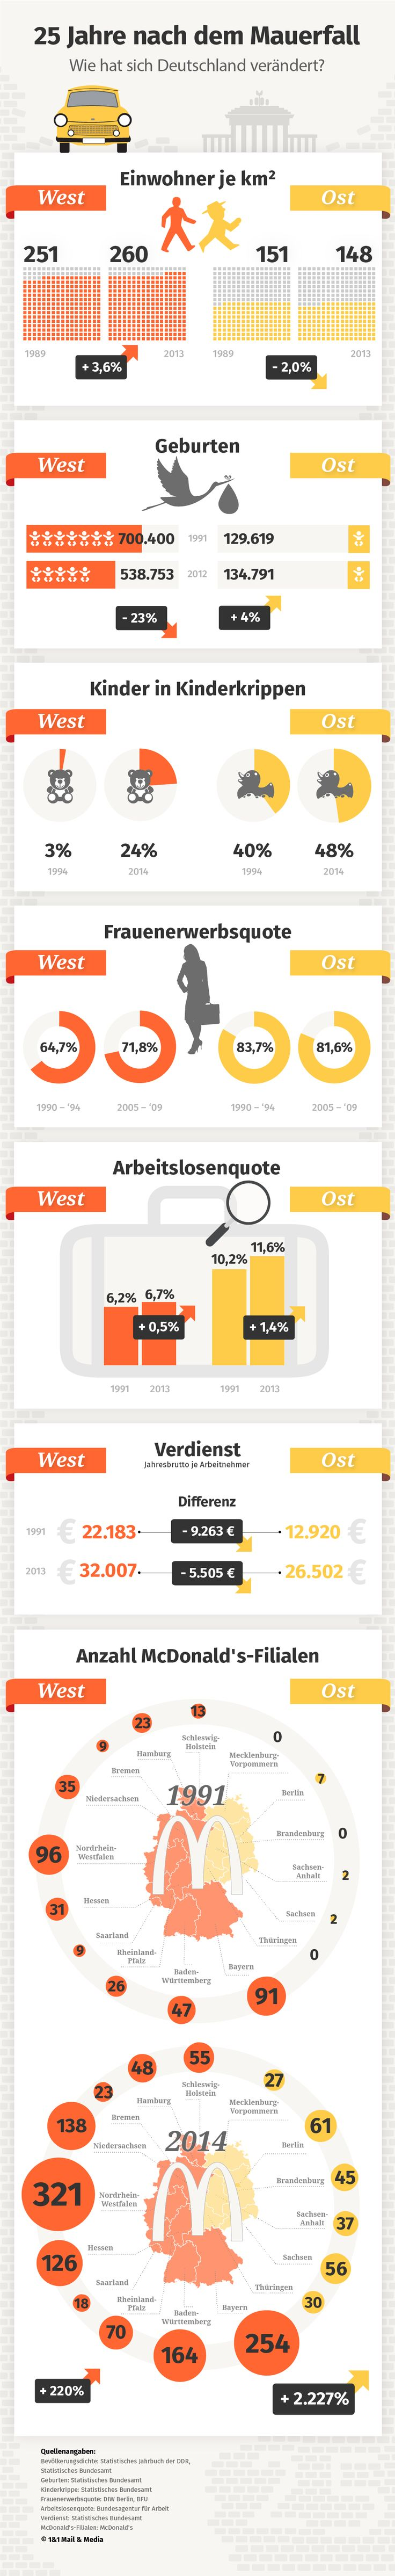 Infografik: 25 Jahre Mauerfall | Deutschland im Wandel (25 years since the wall came down. Changing Germany) | How much has Germany changed? West vs. East ٭Population per km2 ٭Birthrate ٭Children in nursery schools ٭Women´s labour force participation rate ٭Unenployment rate ٭Income (brutto per year) ٭Number of McDonald's stores